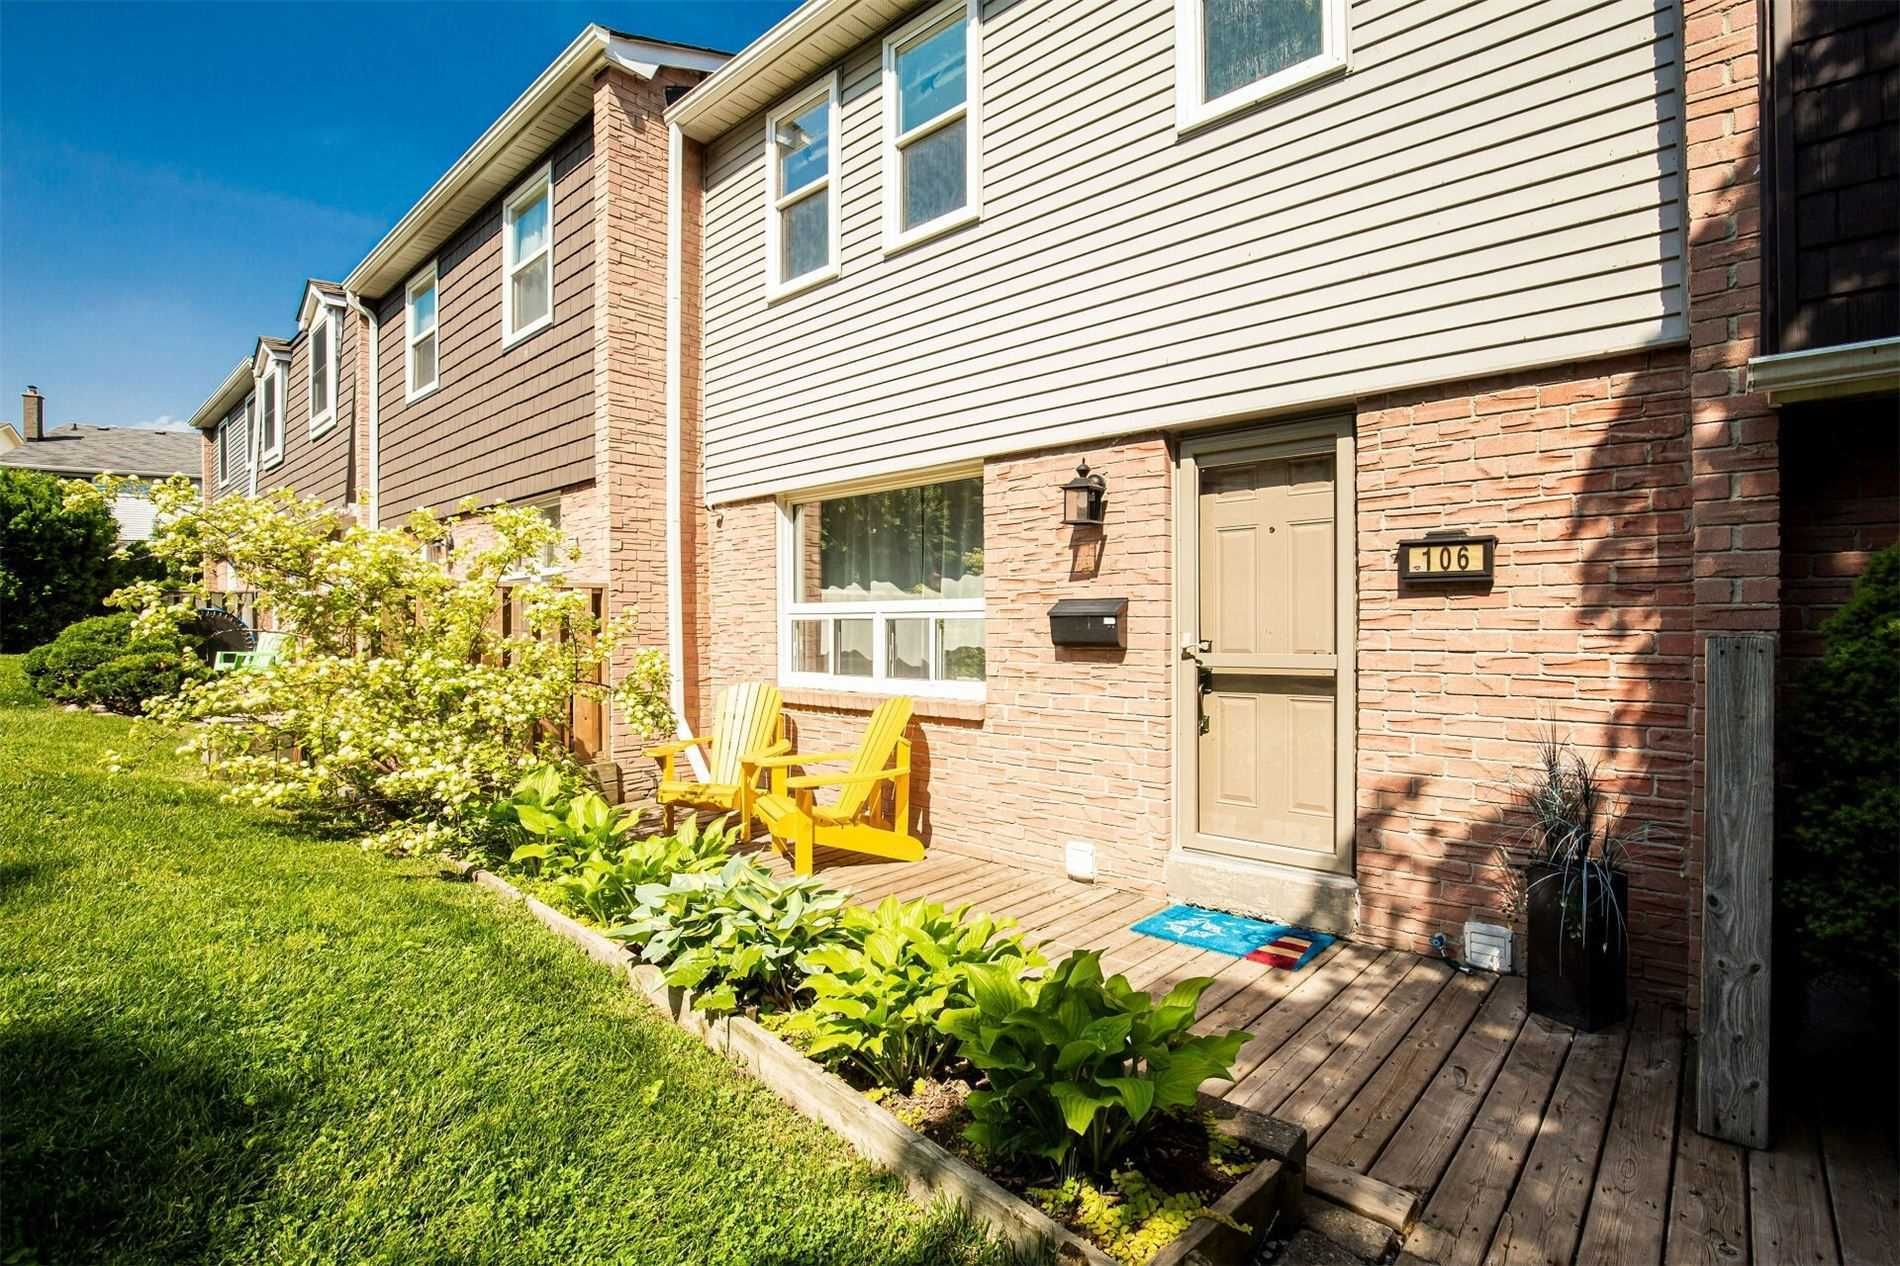 1050 Shawnmarr Rd, unit 106 for sale in Toronto - image #2